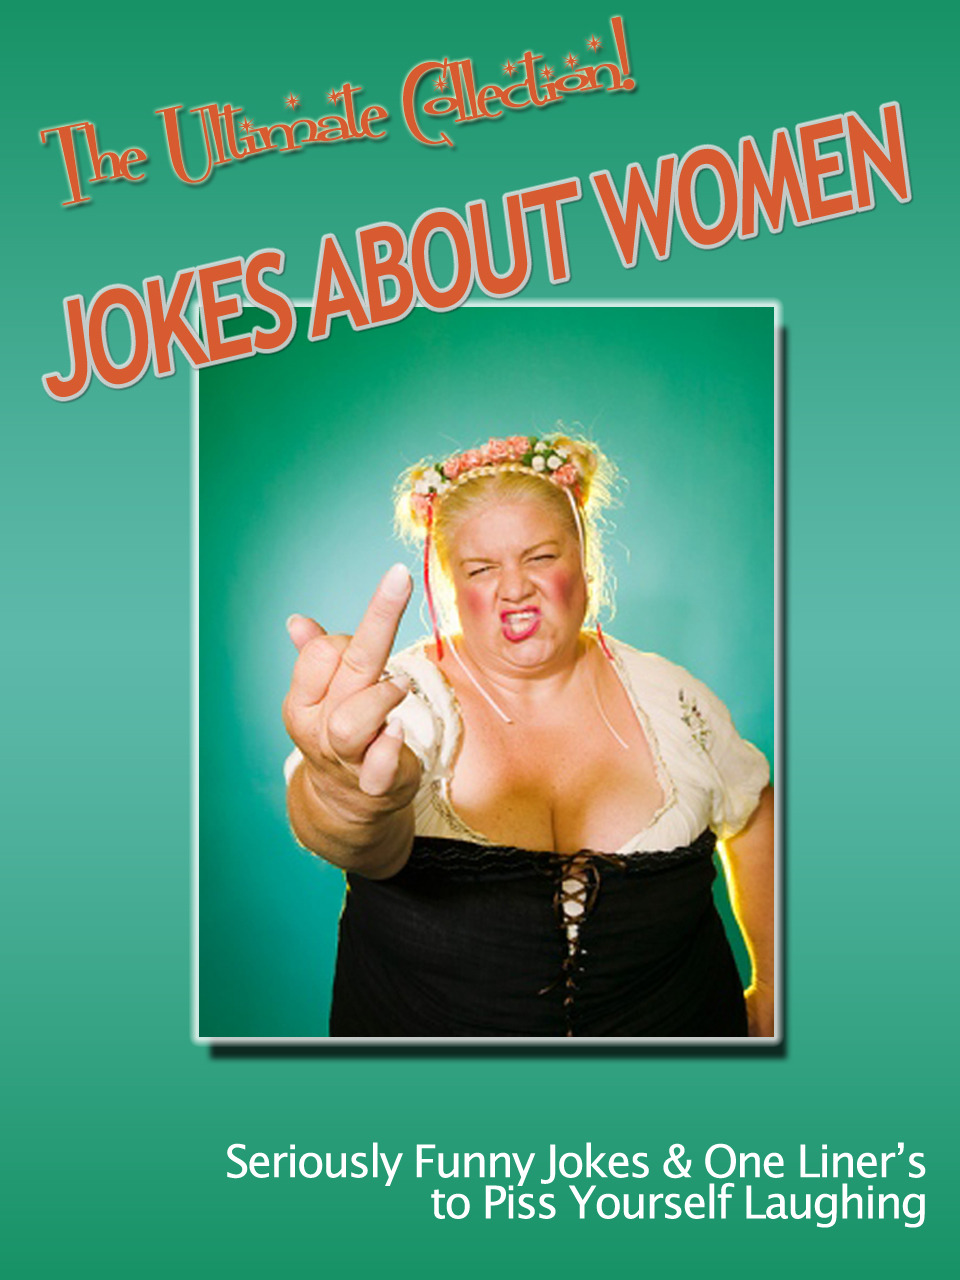 Jokes About Women– The Ultimate Collection! Seriously Funny Jokes & One Liner's to Piss Yourself Laughing